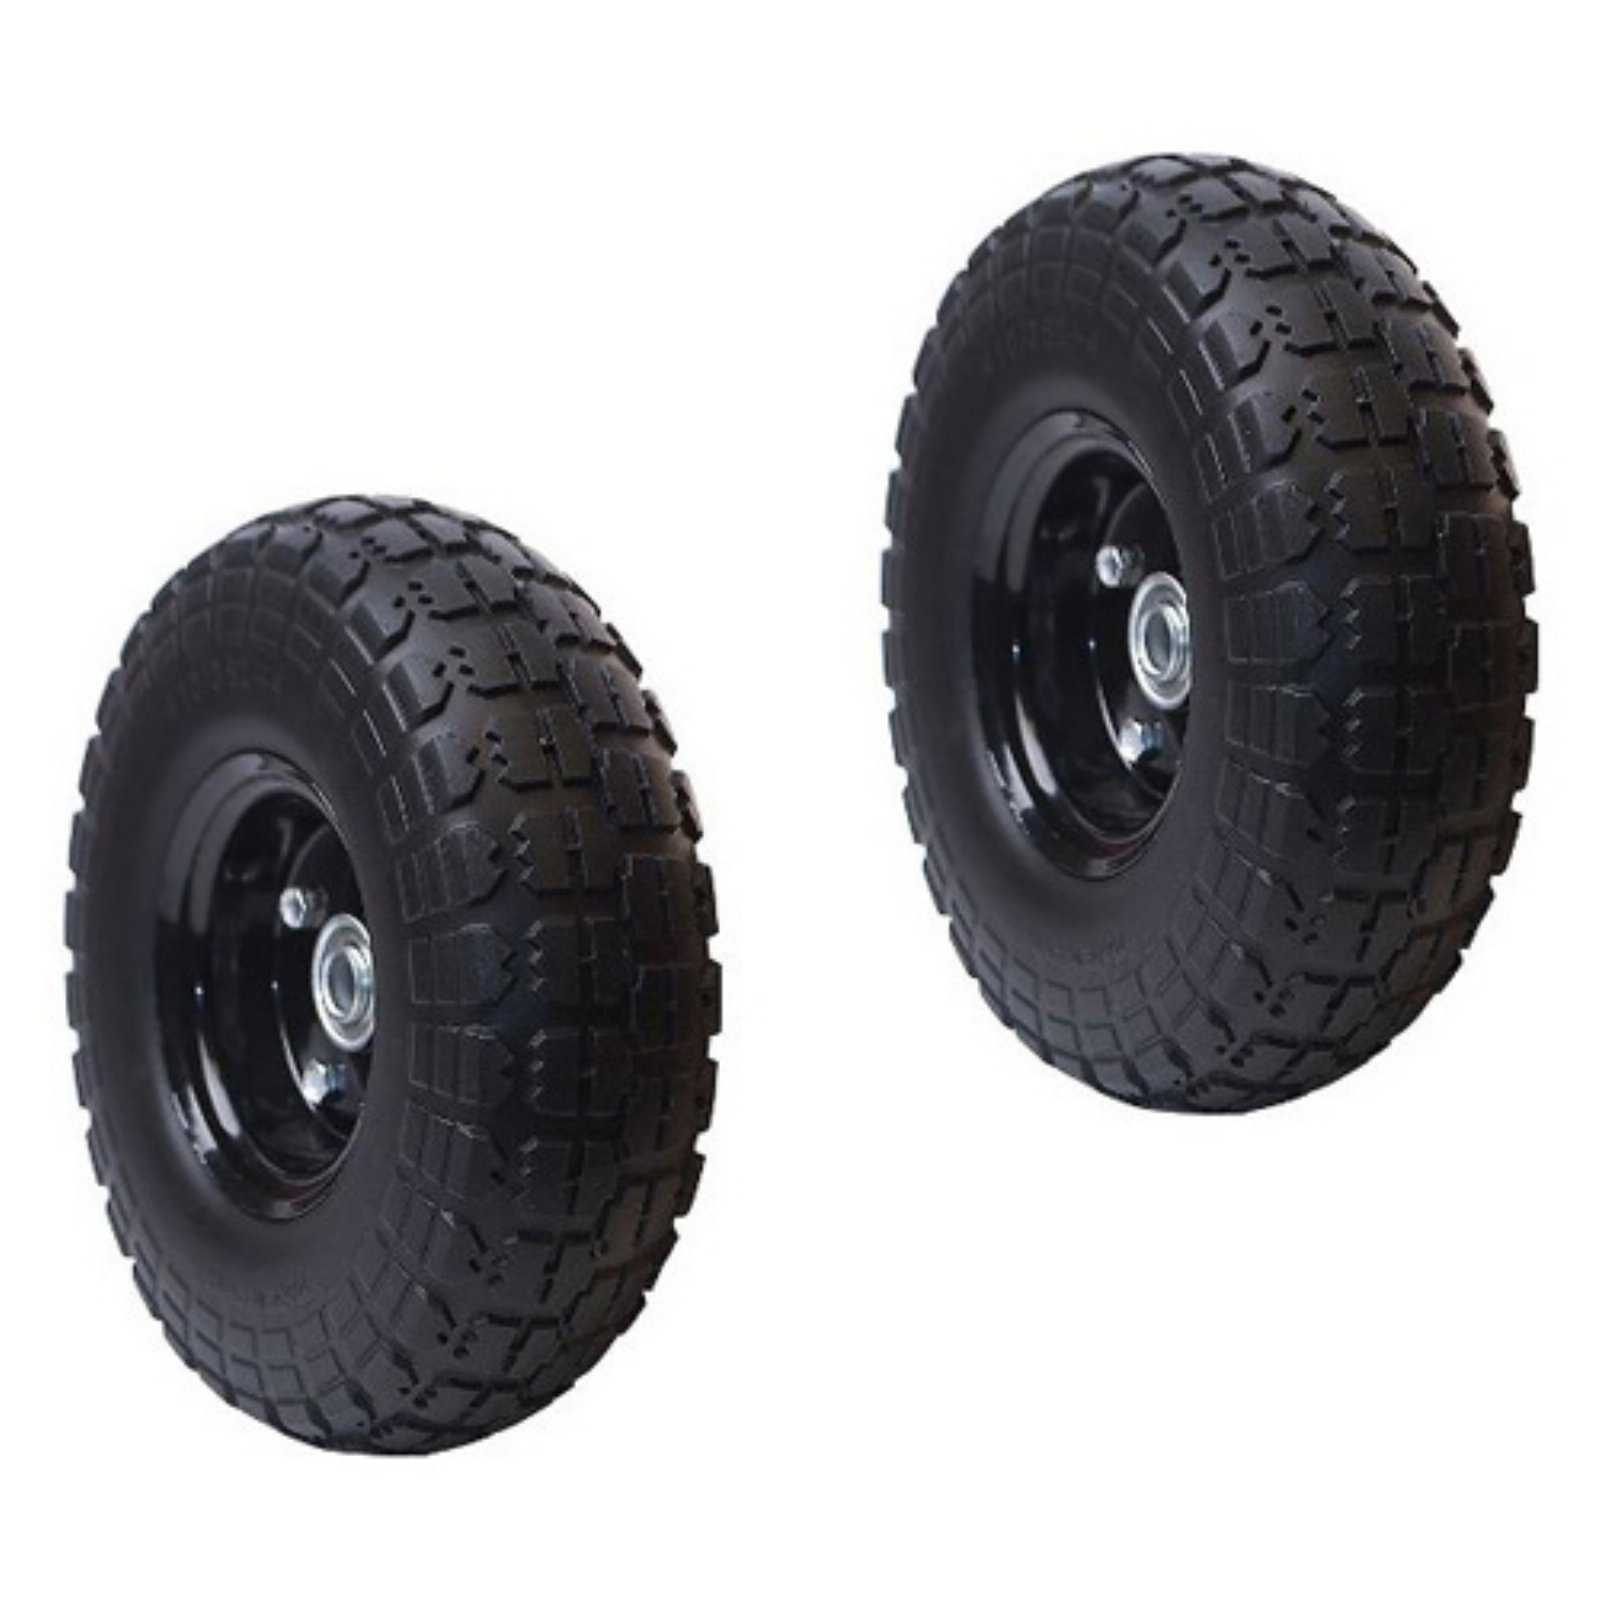 ALEKO 2WNF10 Flat Free Replacement Wheels for Wheelbarrow, 10' No Flat Tire, Black Pack of 2